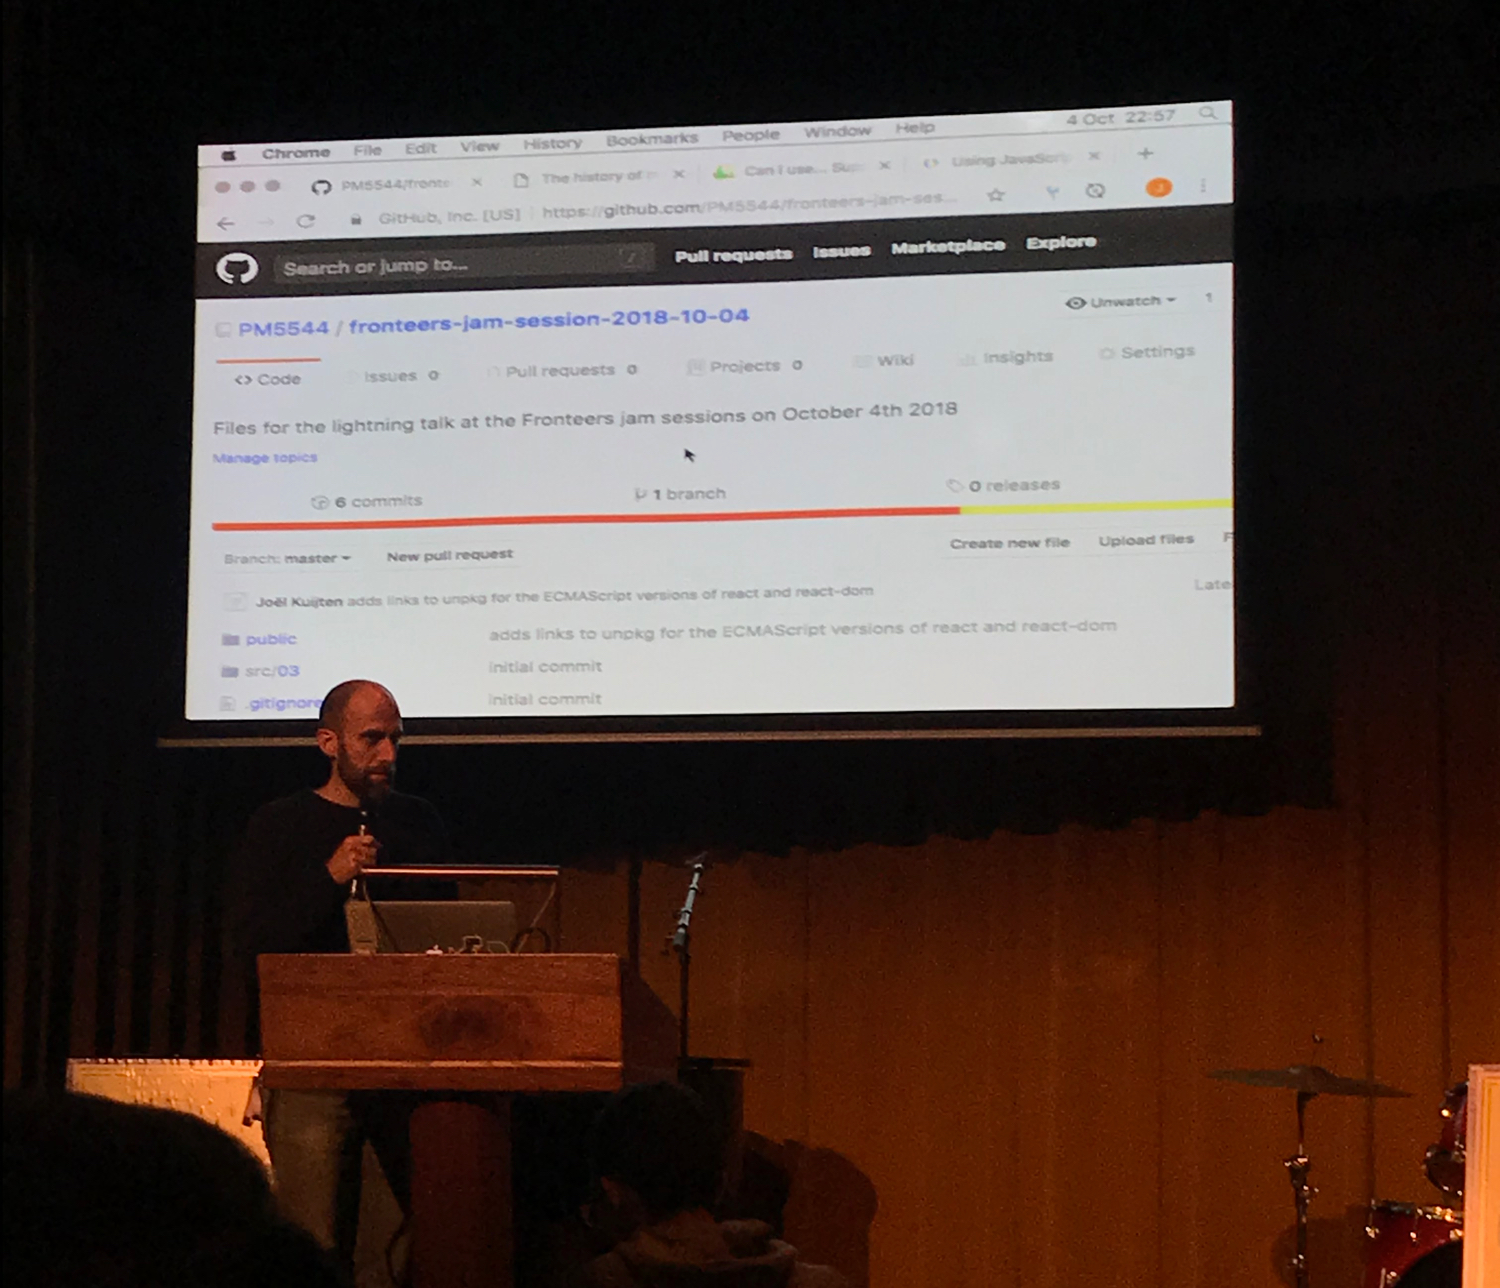 Joel Kuijten at the Fronteers Jam Sessions 2018